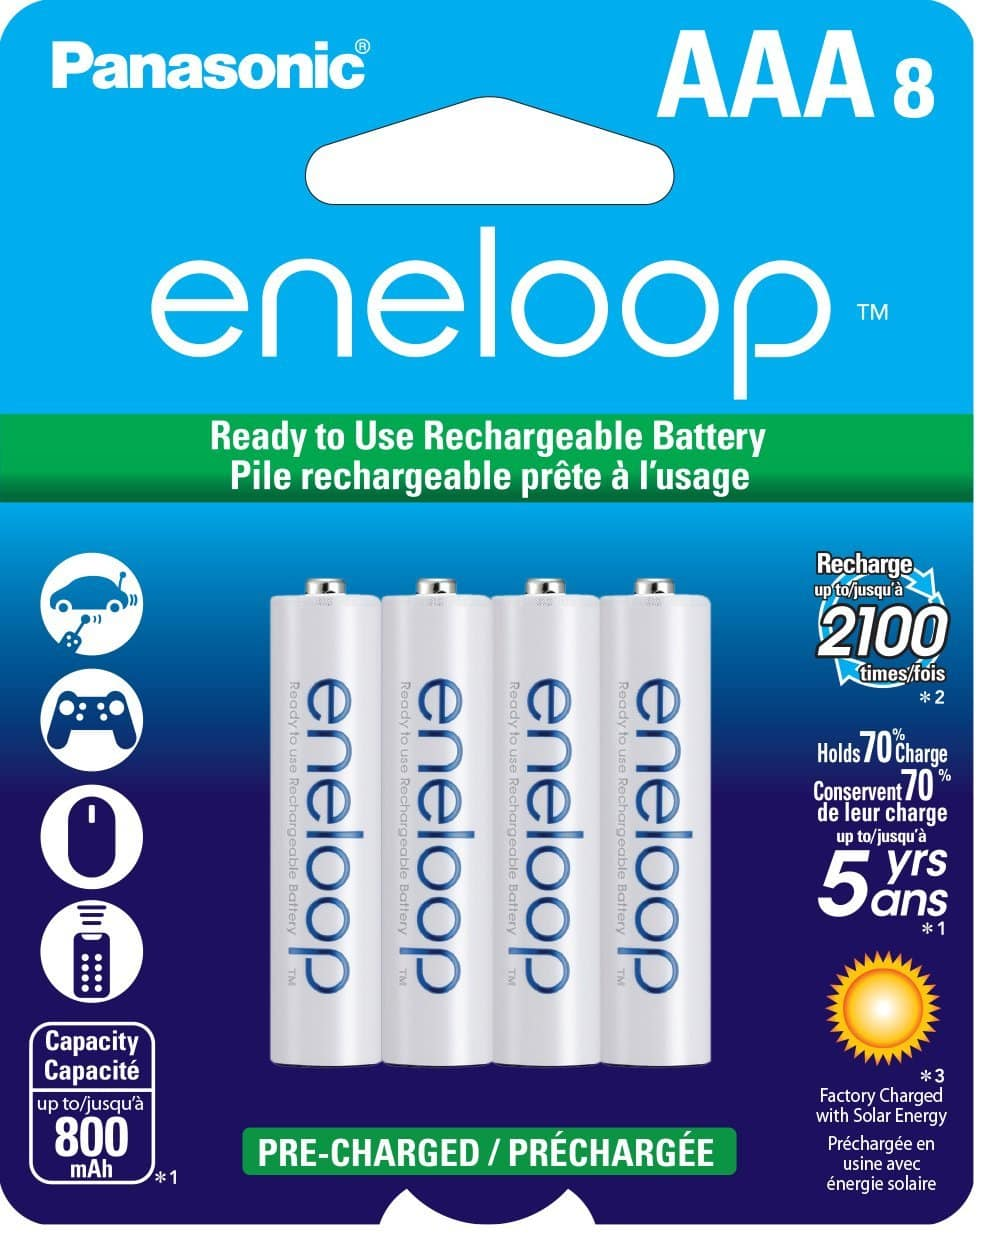 8-Pack Panasonic Eneloop AAA 2100 Cycle Ni-MH Pre-Charged Rechargeable Batteries $14.88